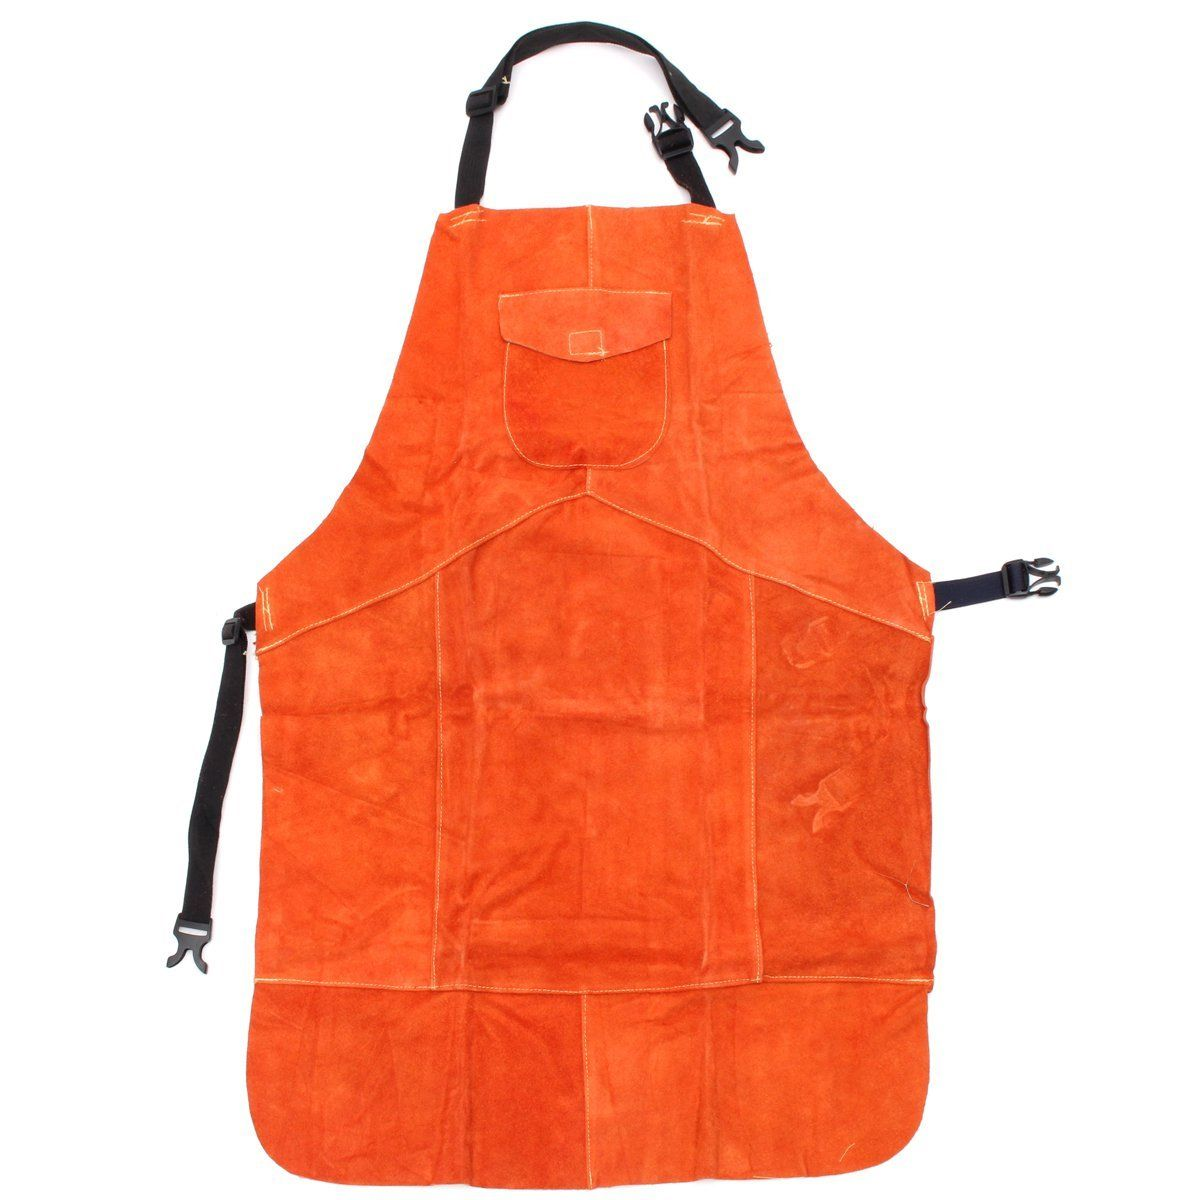 NEW Safurance Cowhide Leather Welding Protective Apron Heat Resistant Soldering Mechanic Smock Workplace Safety